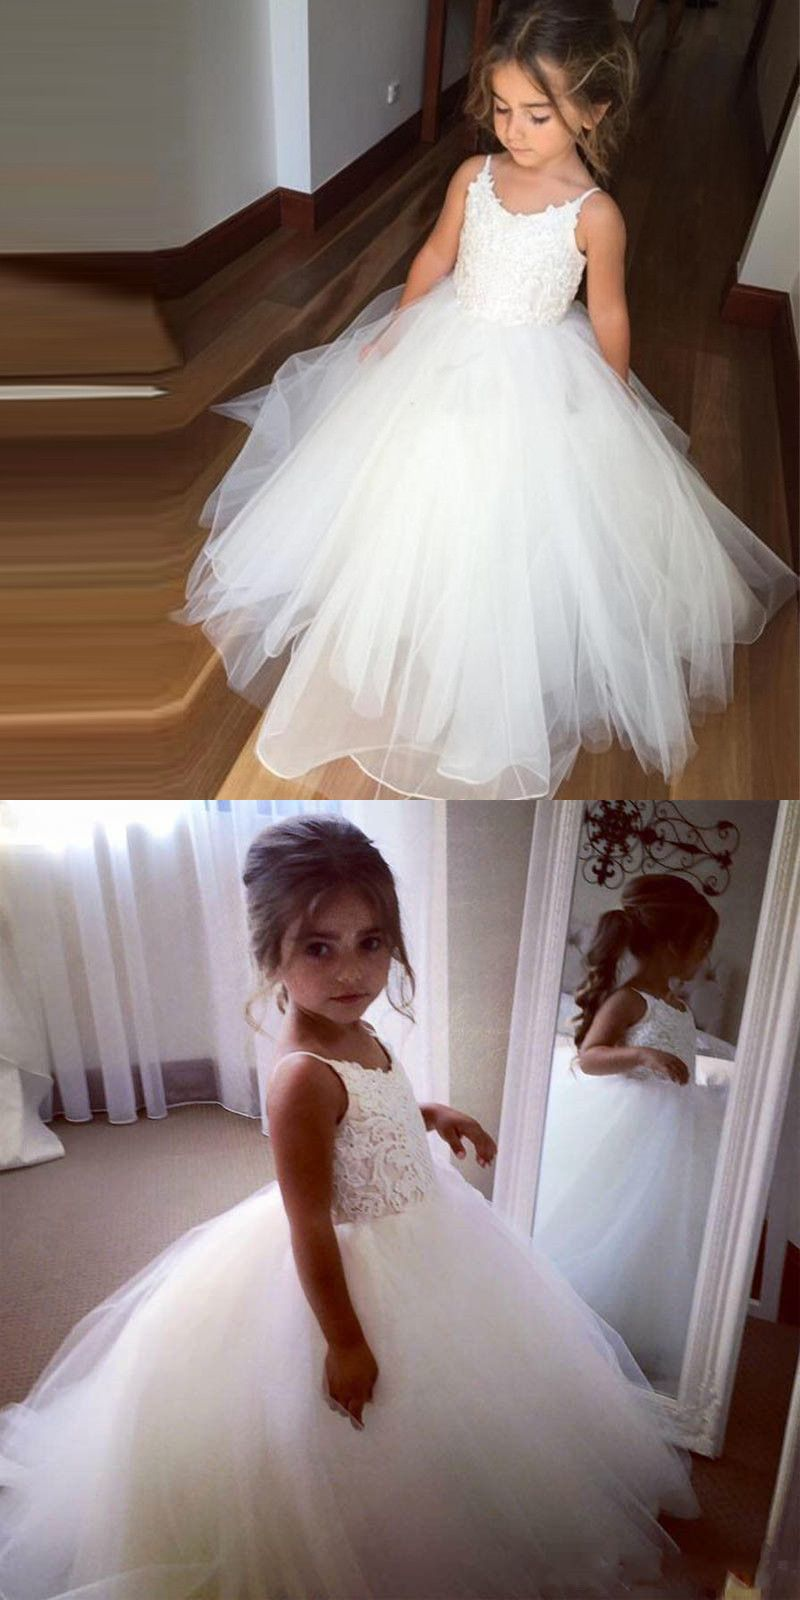 c86d2c117aa Princess A-line Straps Long White Tulle Flower Girl Dress from ...